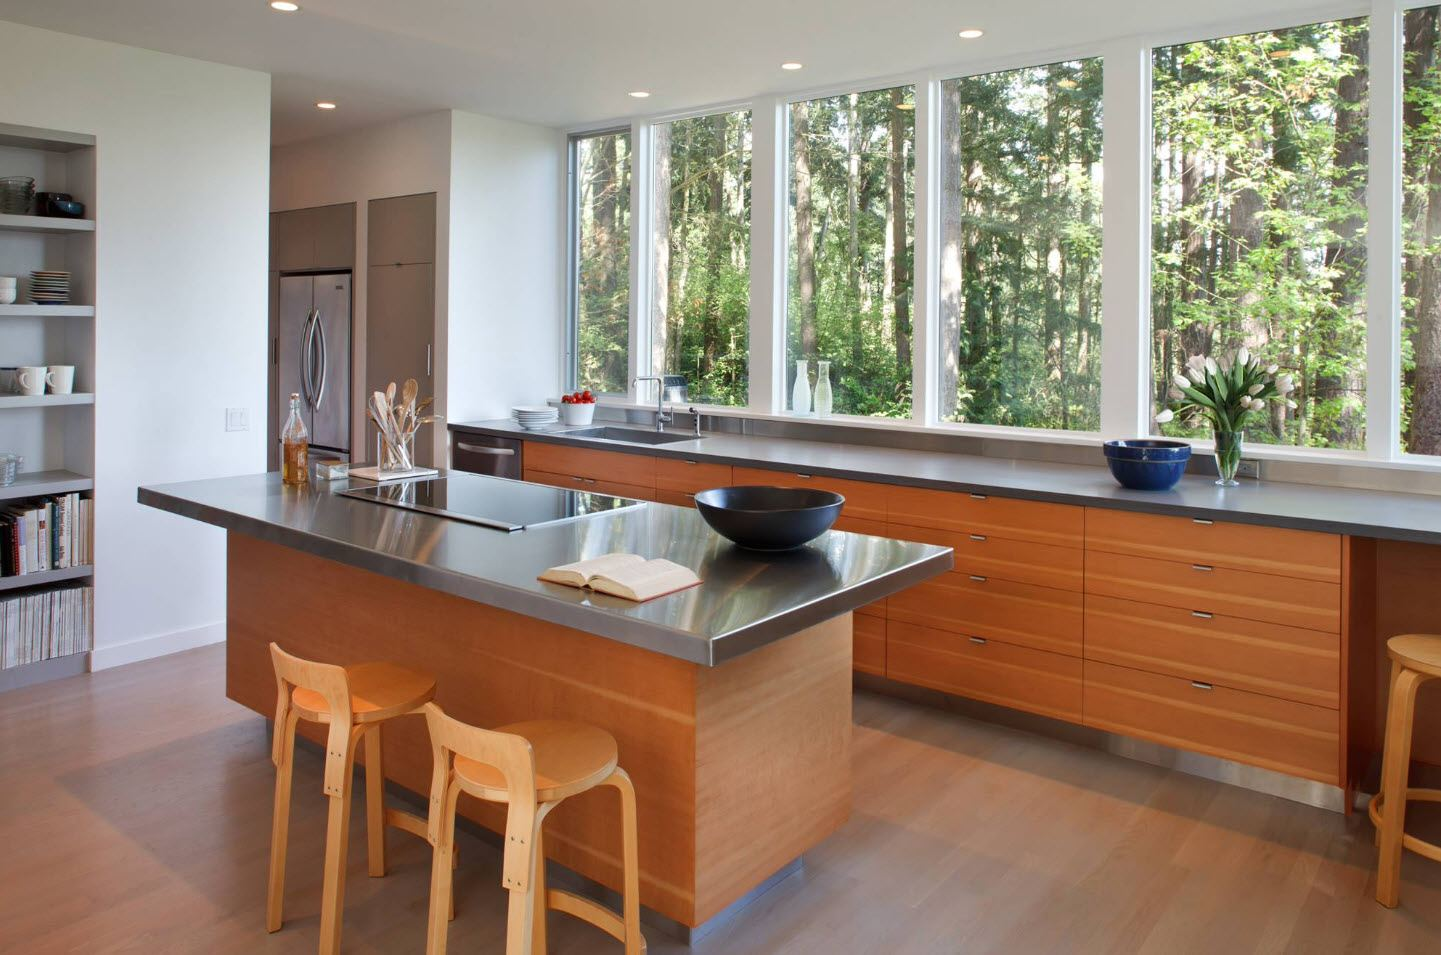 Cottage kitchen with wooden trimming. large window and glossy dark countertops